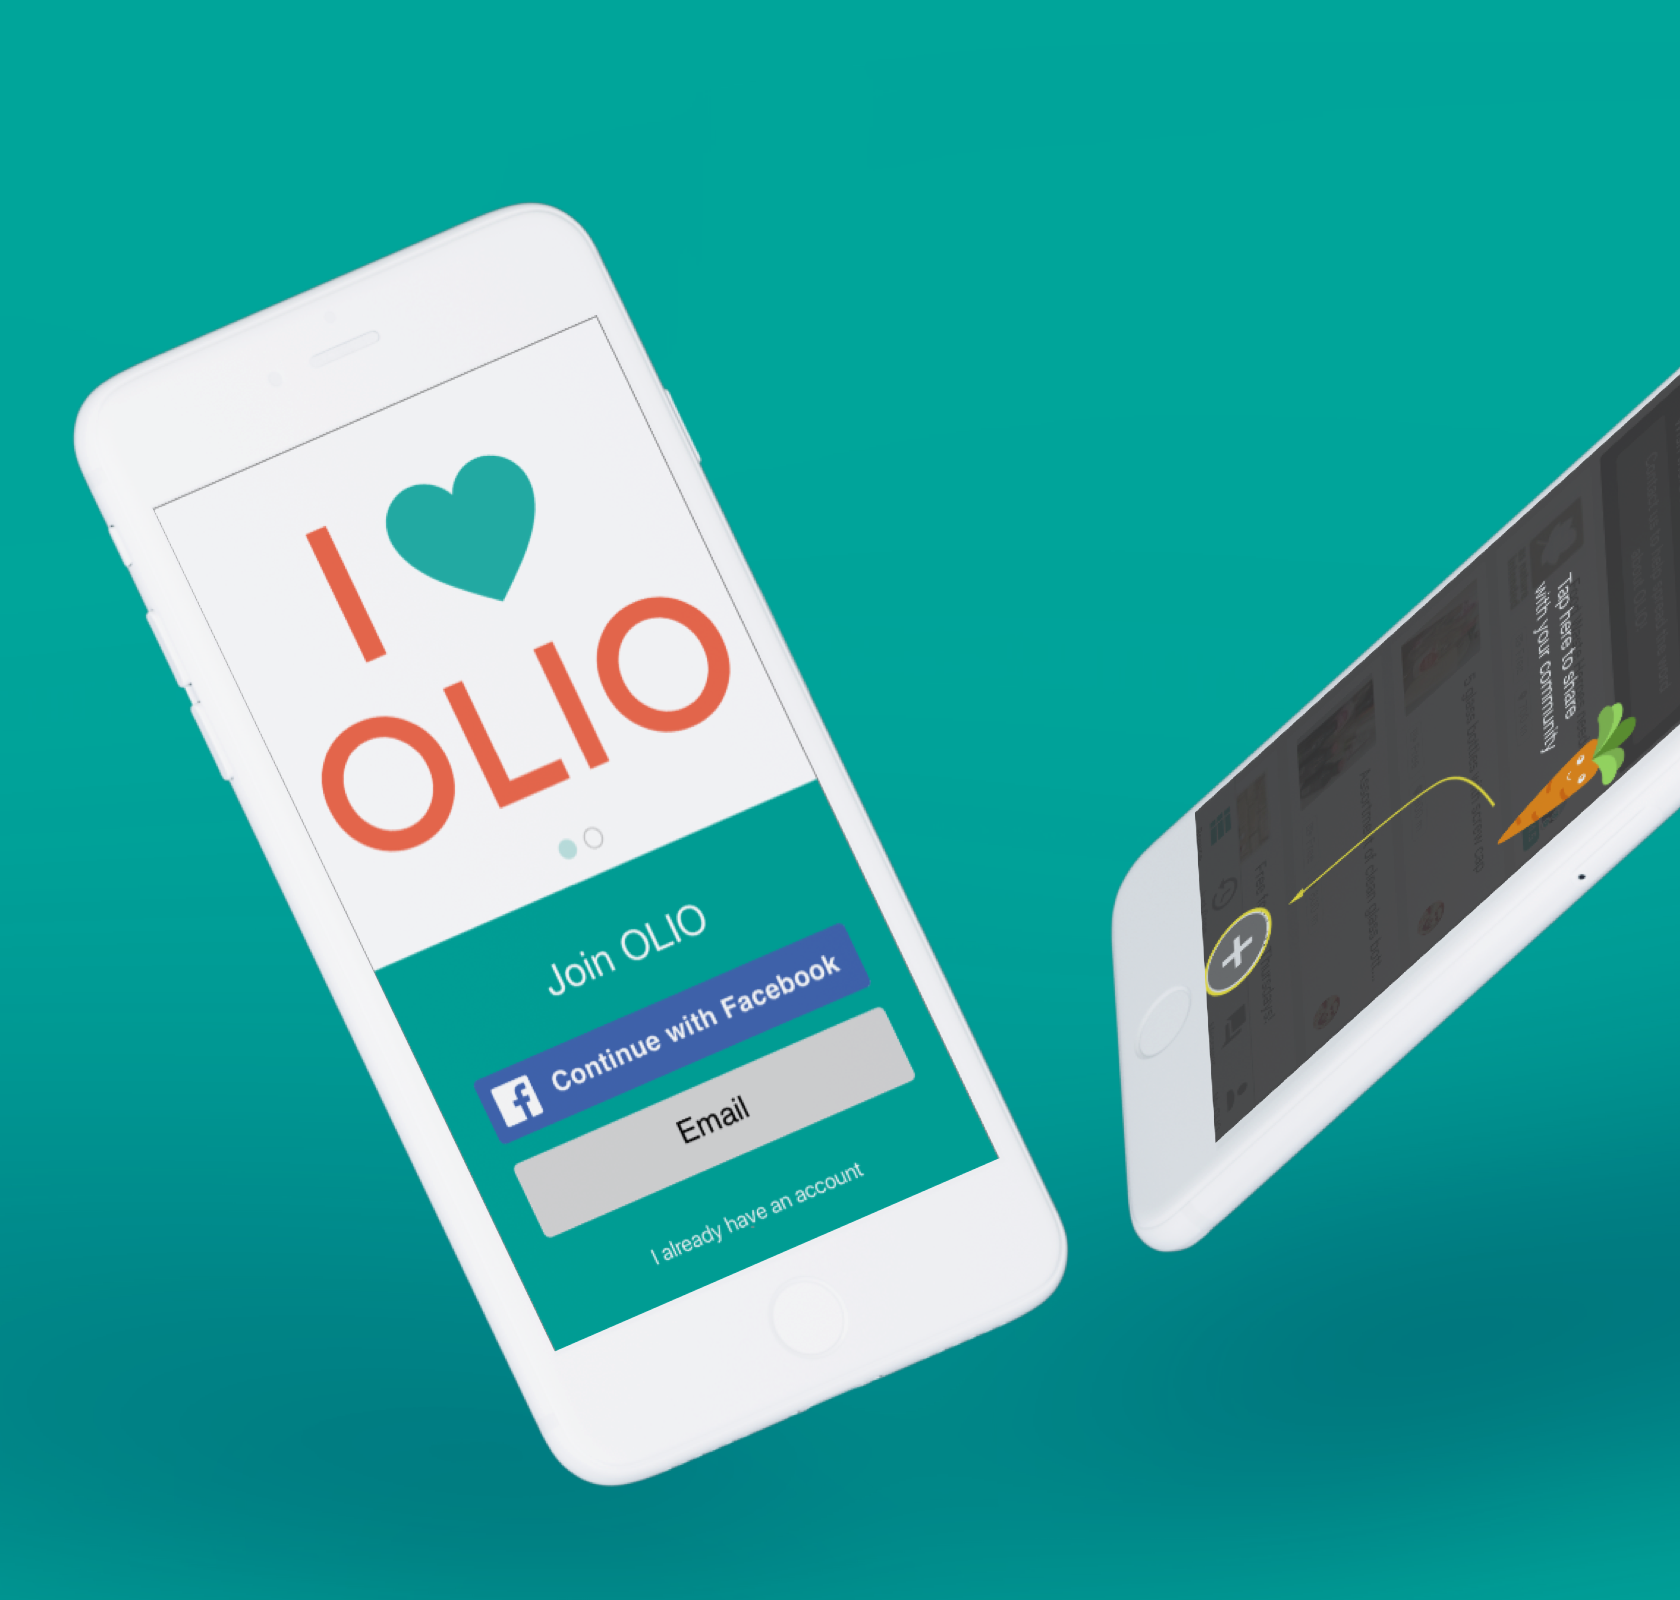 OLIO - The local sharing RevolutionNew onboarding and item listing experience encouraging people to start giving